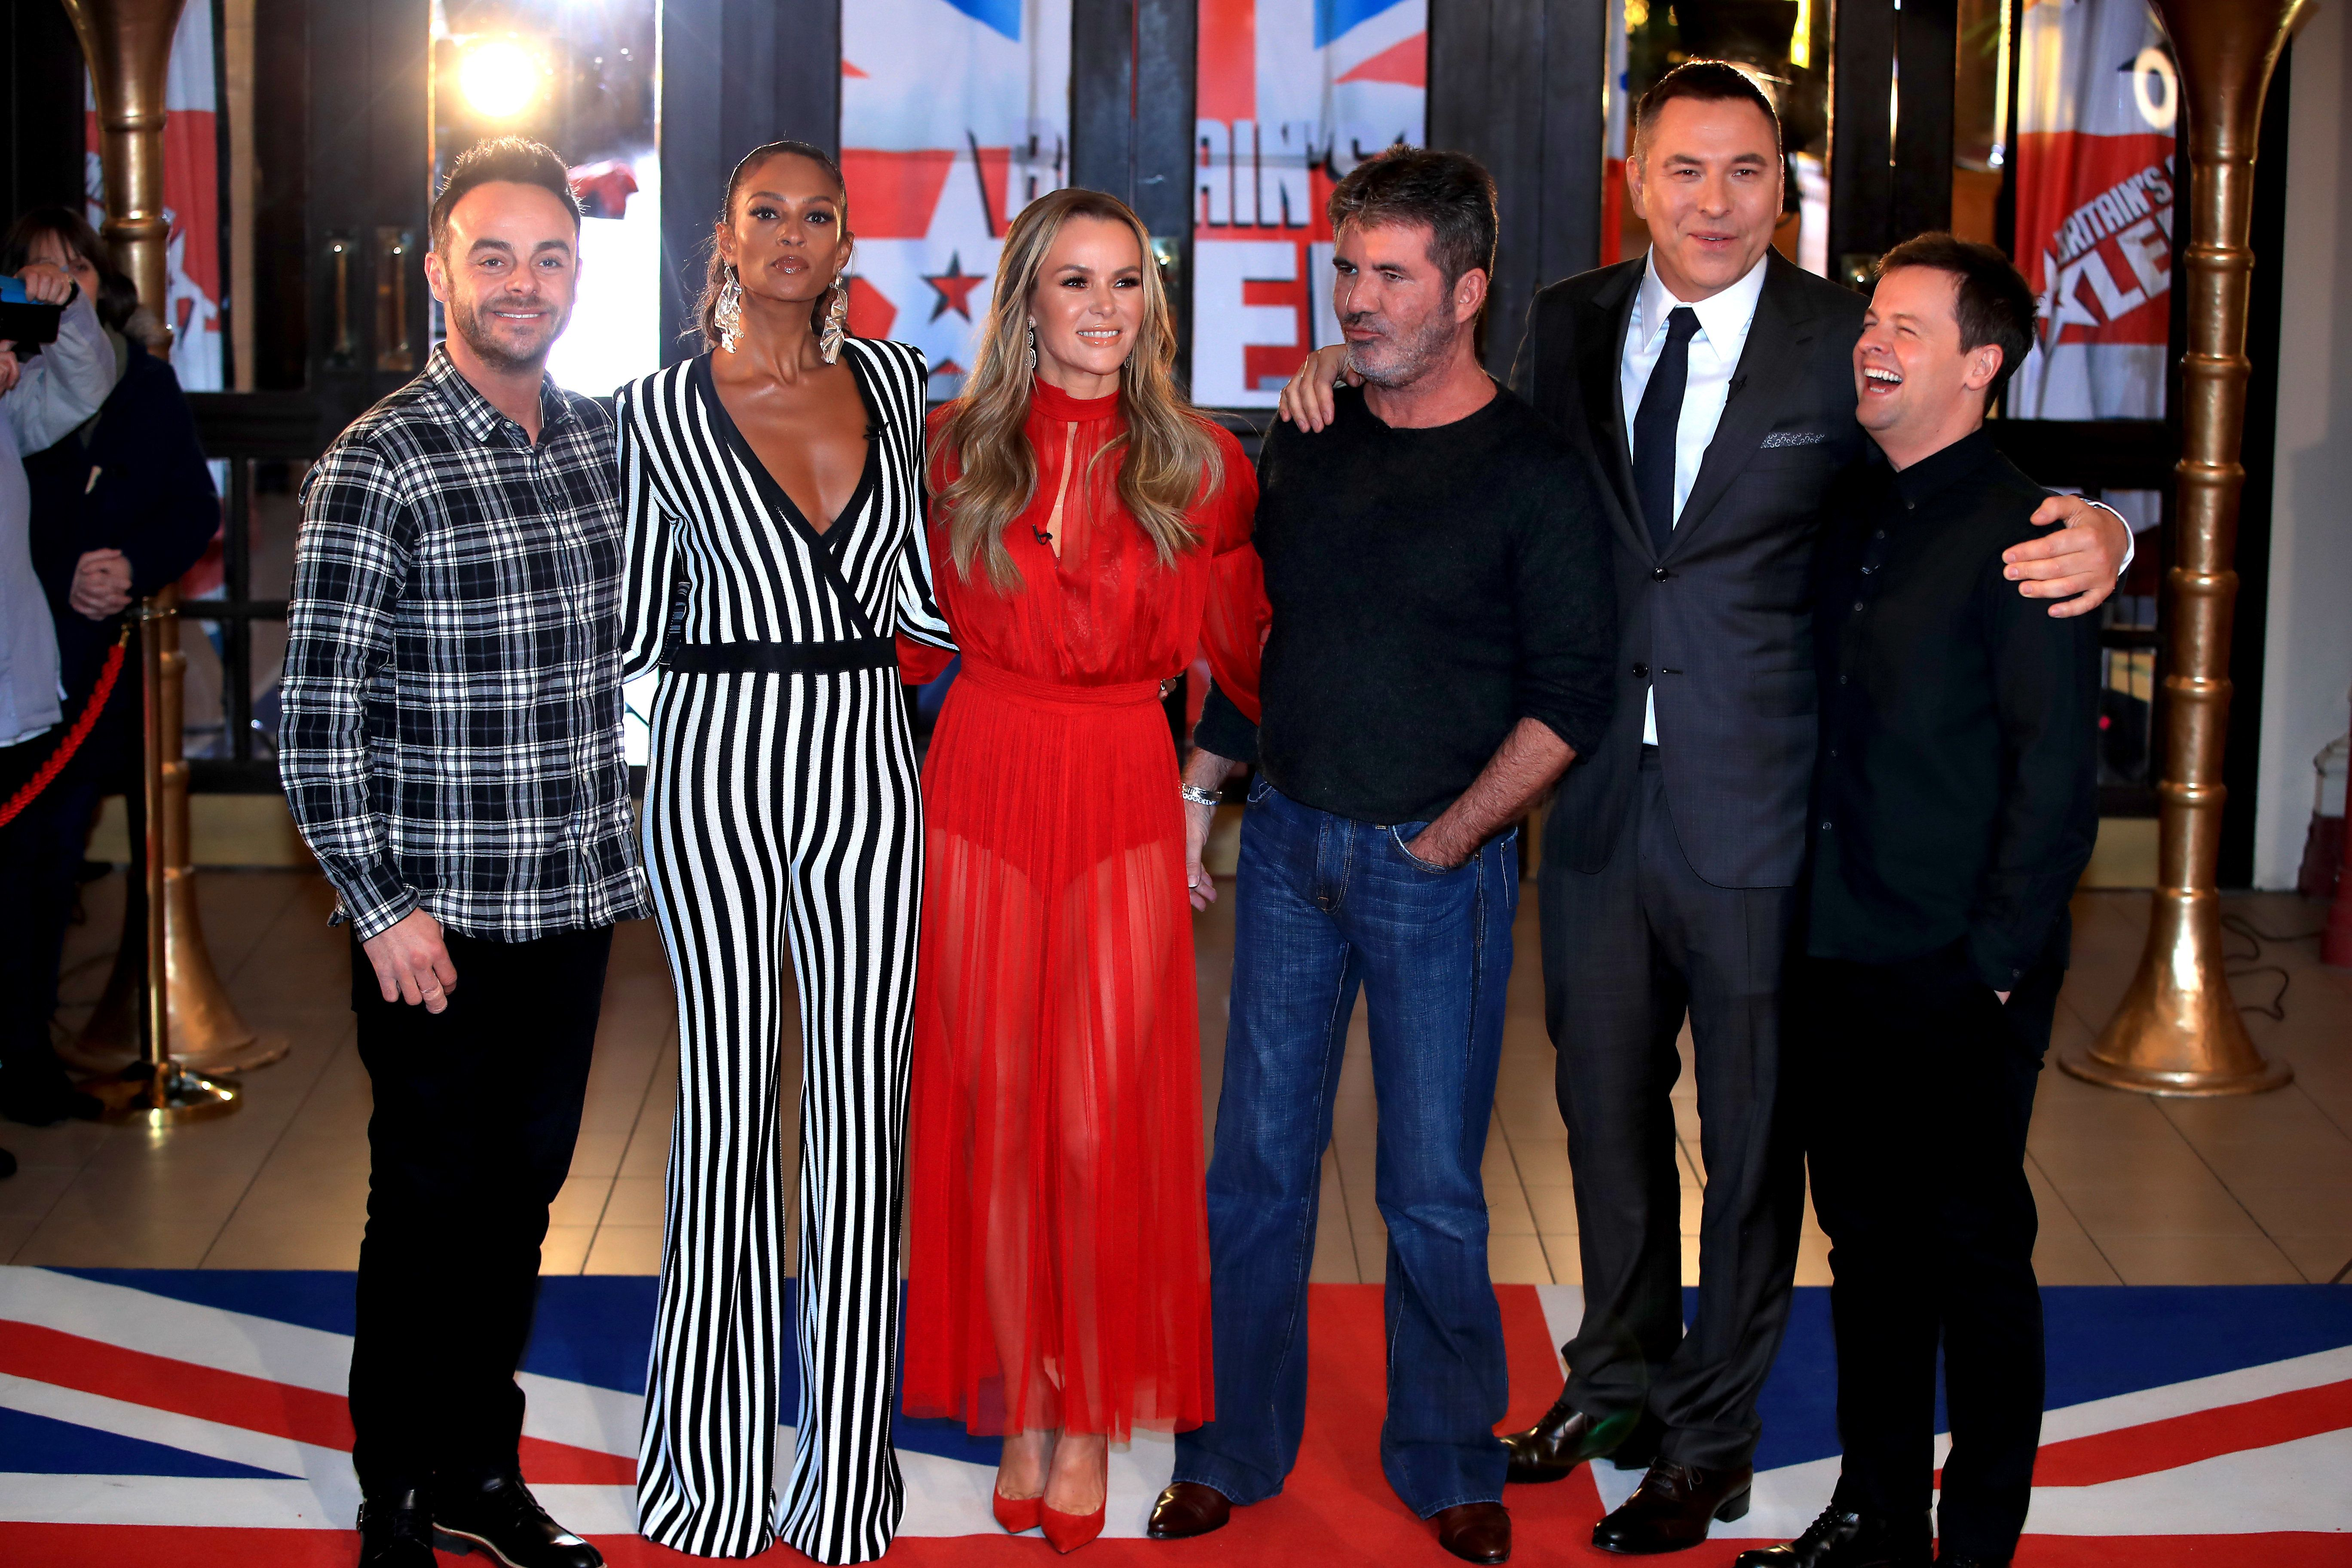 'Britain's Got Talent' Judges To Have Their Off-Air Asides Broadcast For The First Time